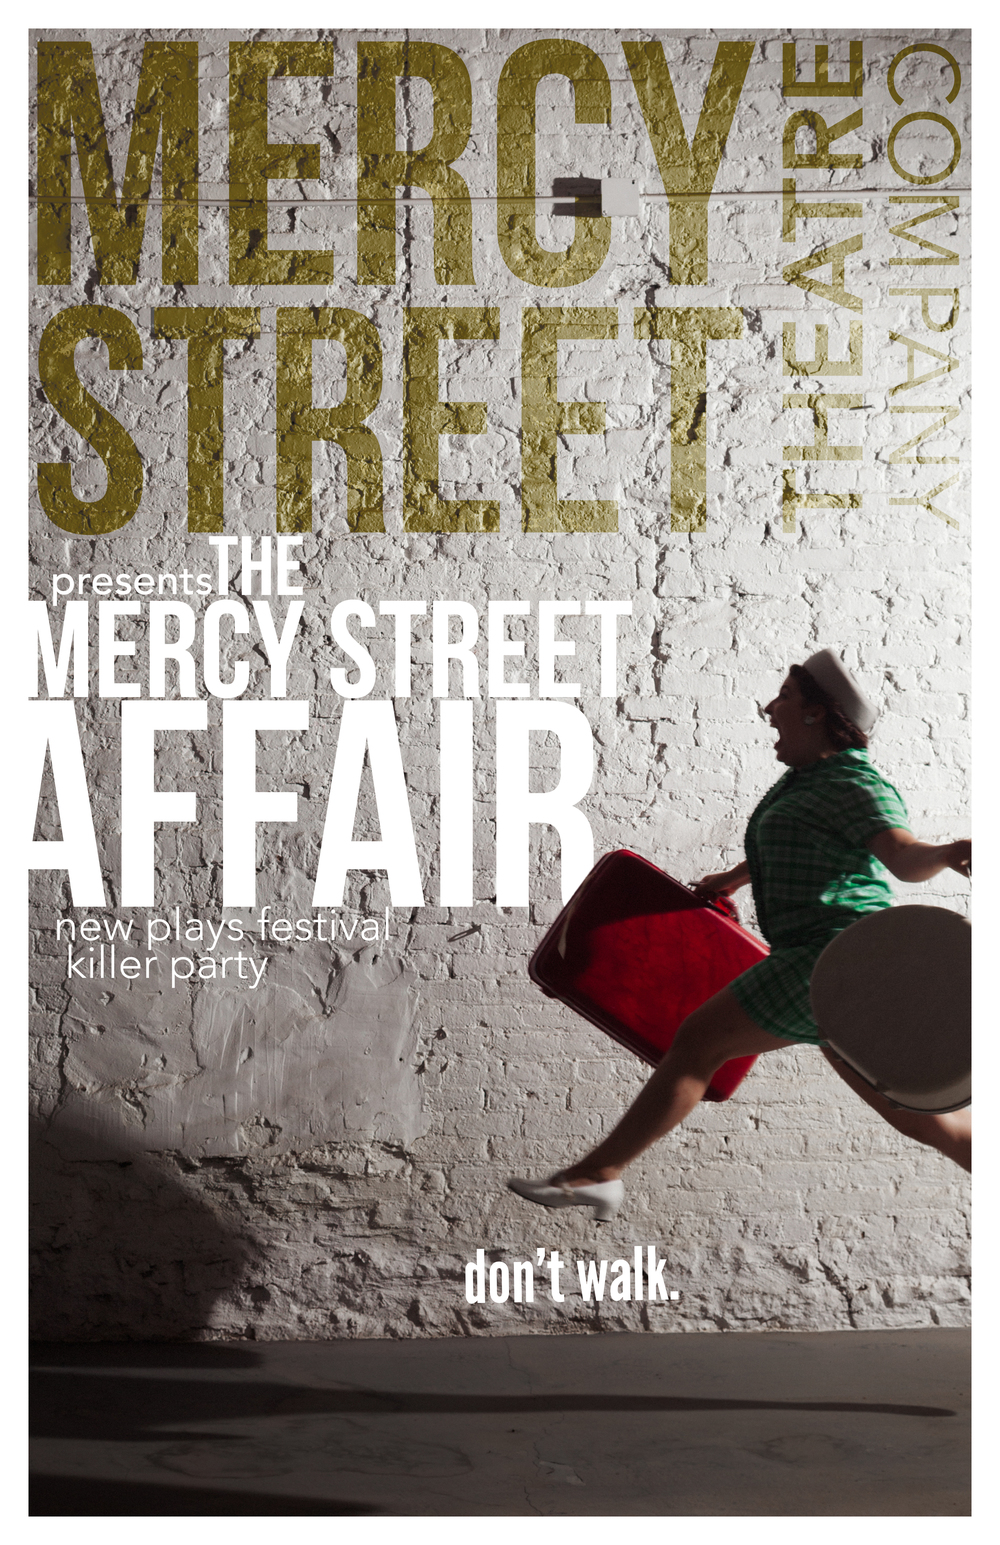 THE MERCY STREET AFFAIR new plays festival & killer party featuring new work by Resident Playwrights E.J.C. Calvert Rachel DuBose Dakota Parobek Dusty Wilson